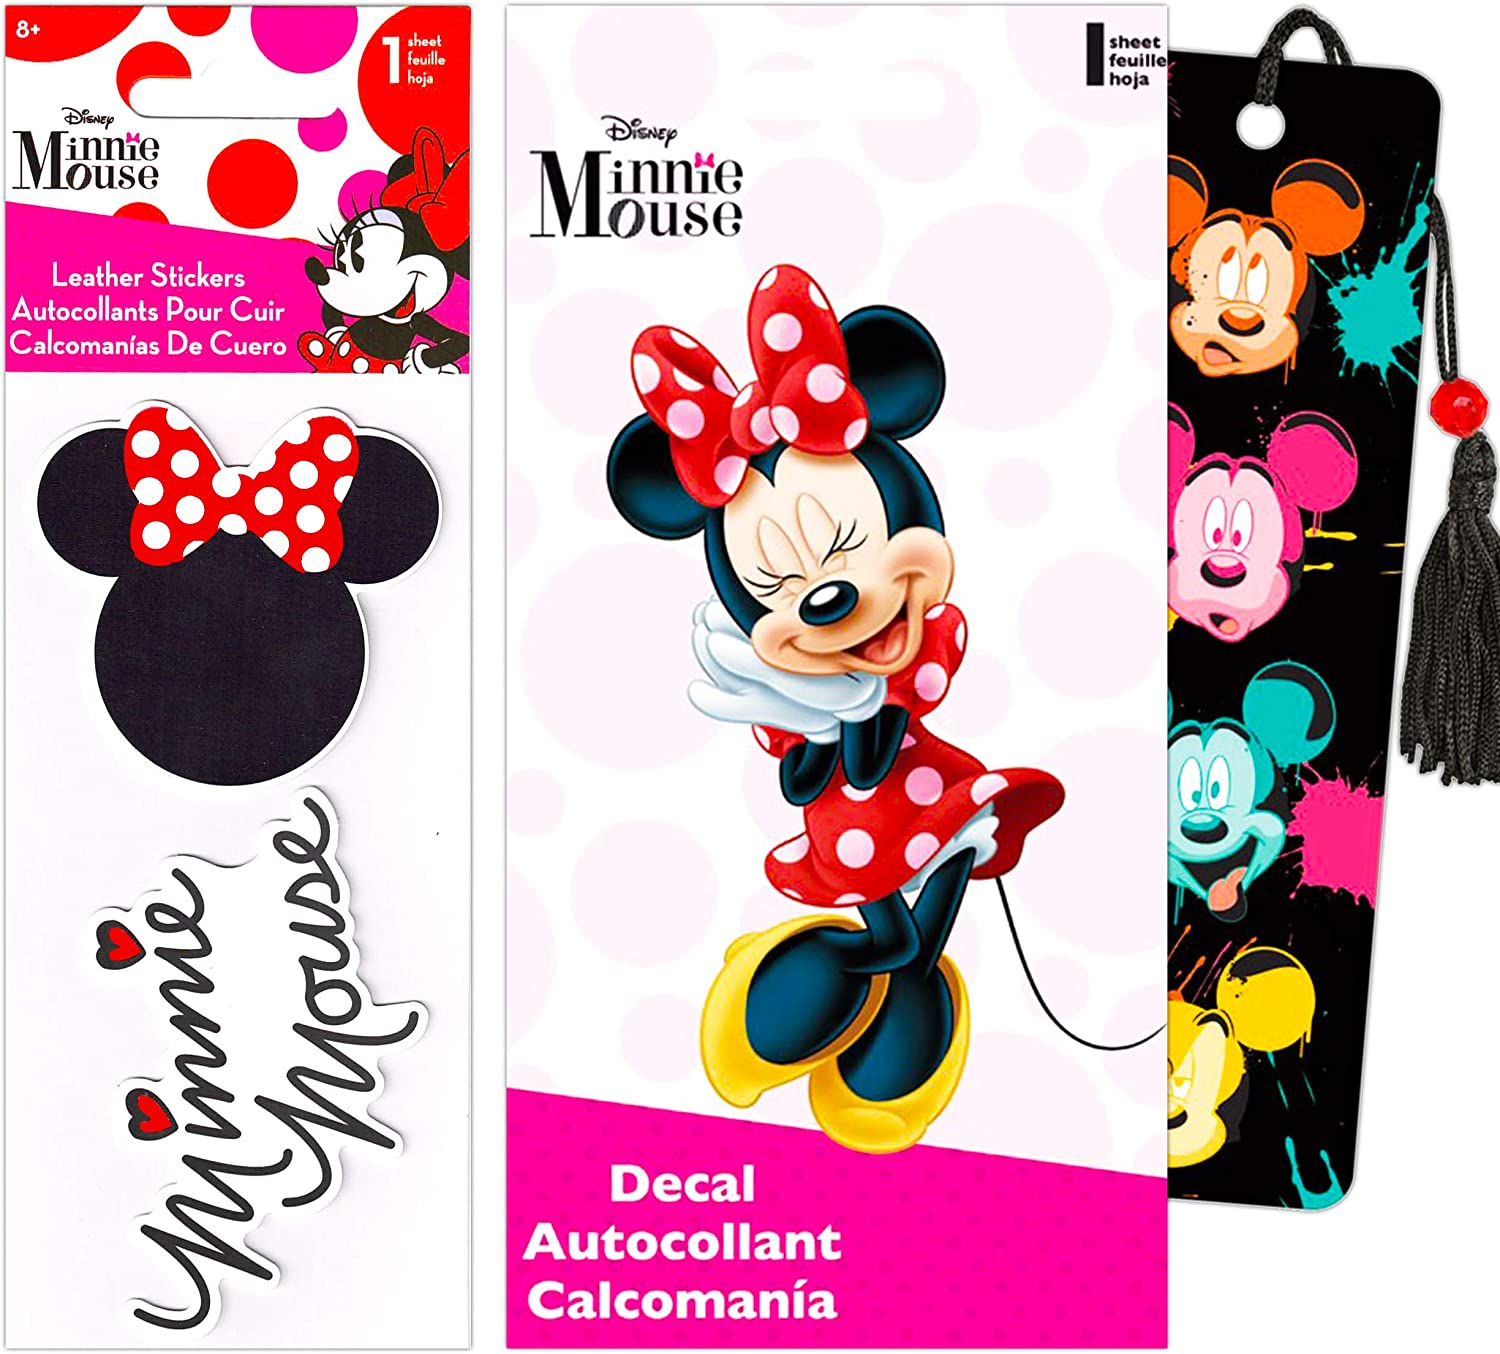 Disney Minnie Mouse Decal Sticker Bundle Pack - Minnie Mouse Sticker Decal Set for Walls Car Laptop with Minnie Mouse Bookmark (Disney Minnie Mouse Party Supplies Office Supplies School Supplies)